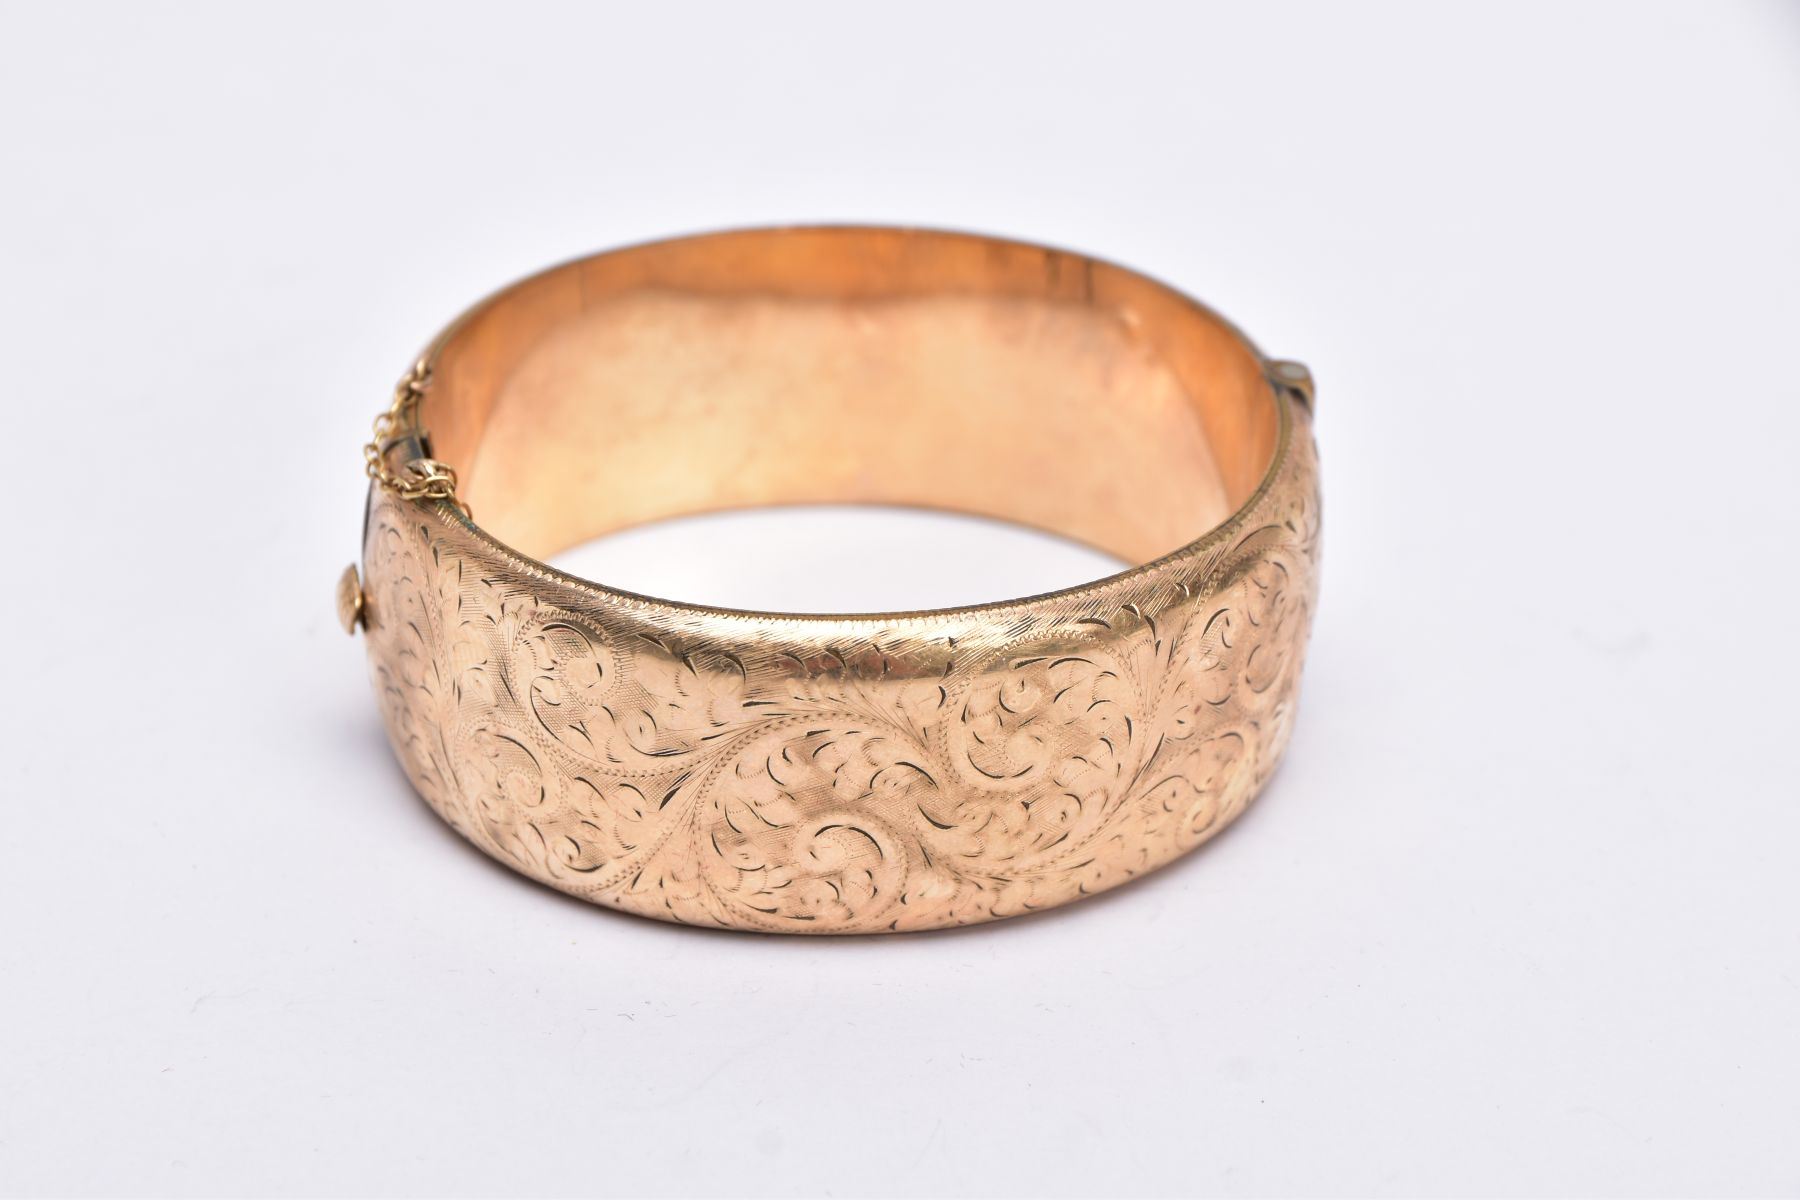 A ROLLED GOLD WIDE BANGLE, hinged bangle with a half engraved foliate design, push pin clasp, fitted